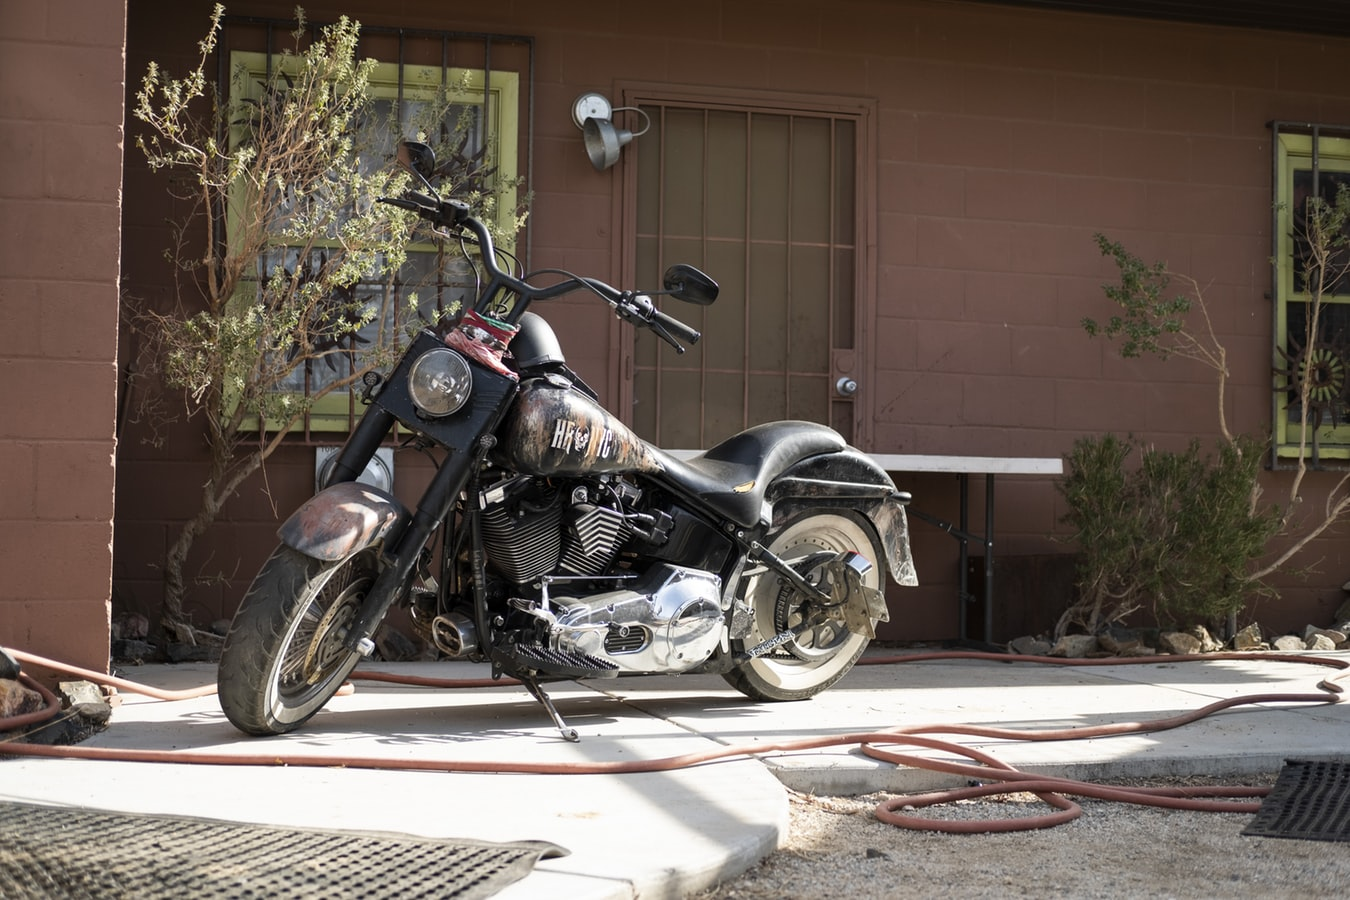 Motorcycle in the yard